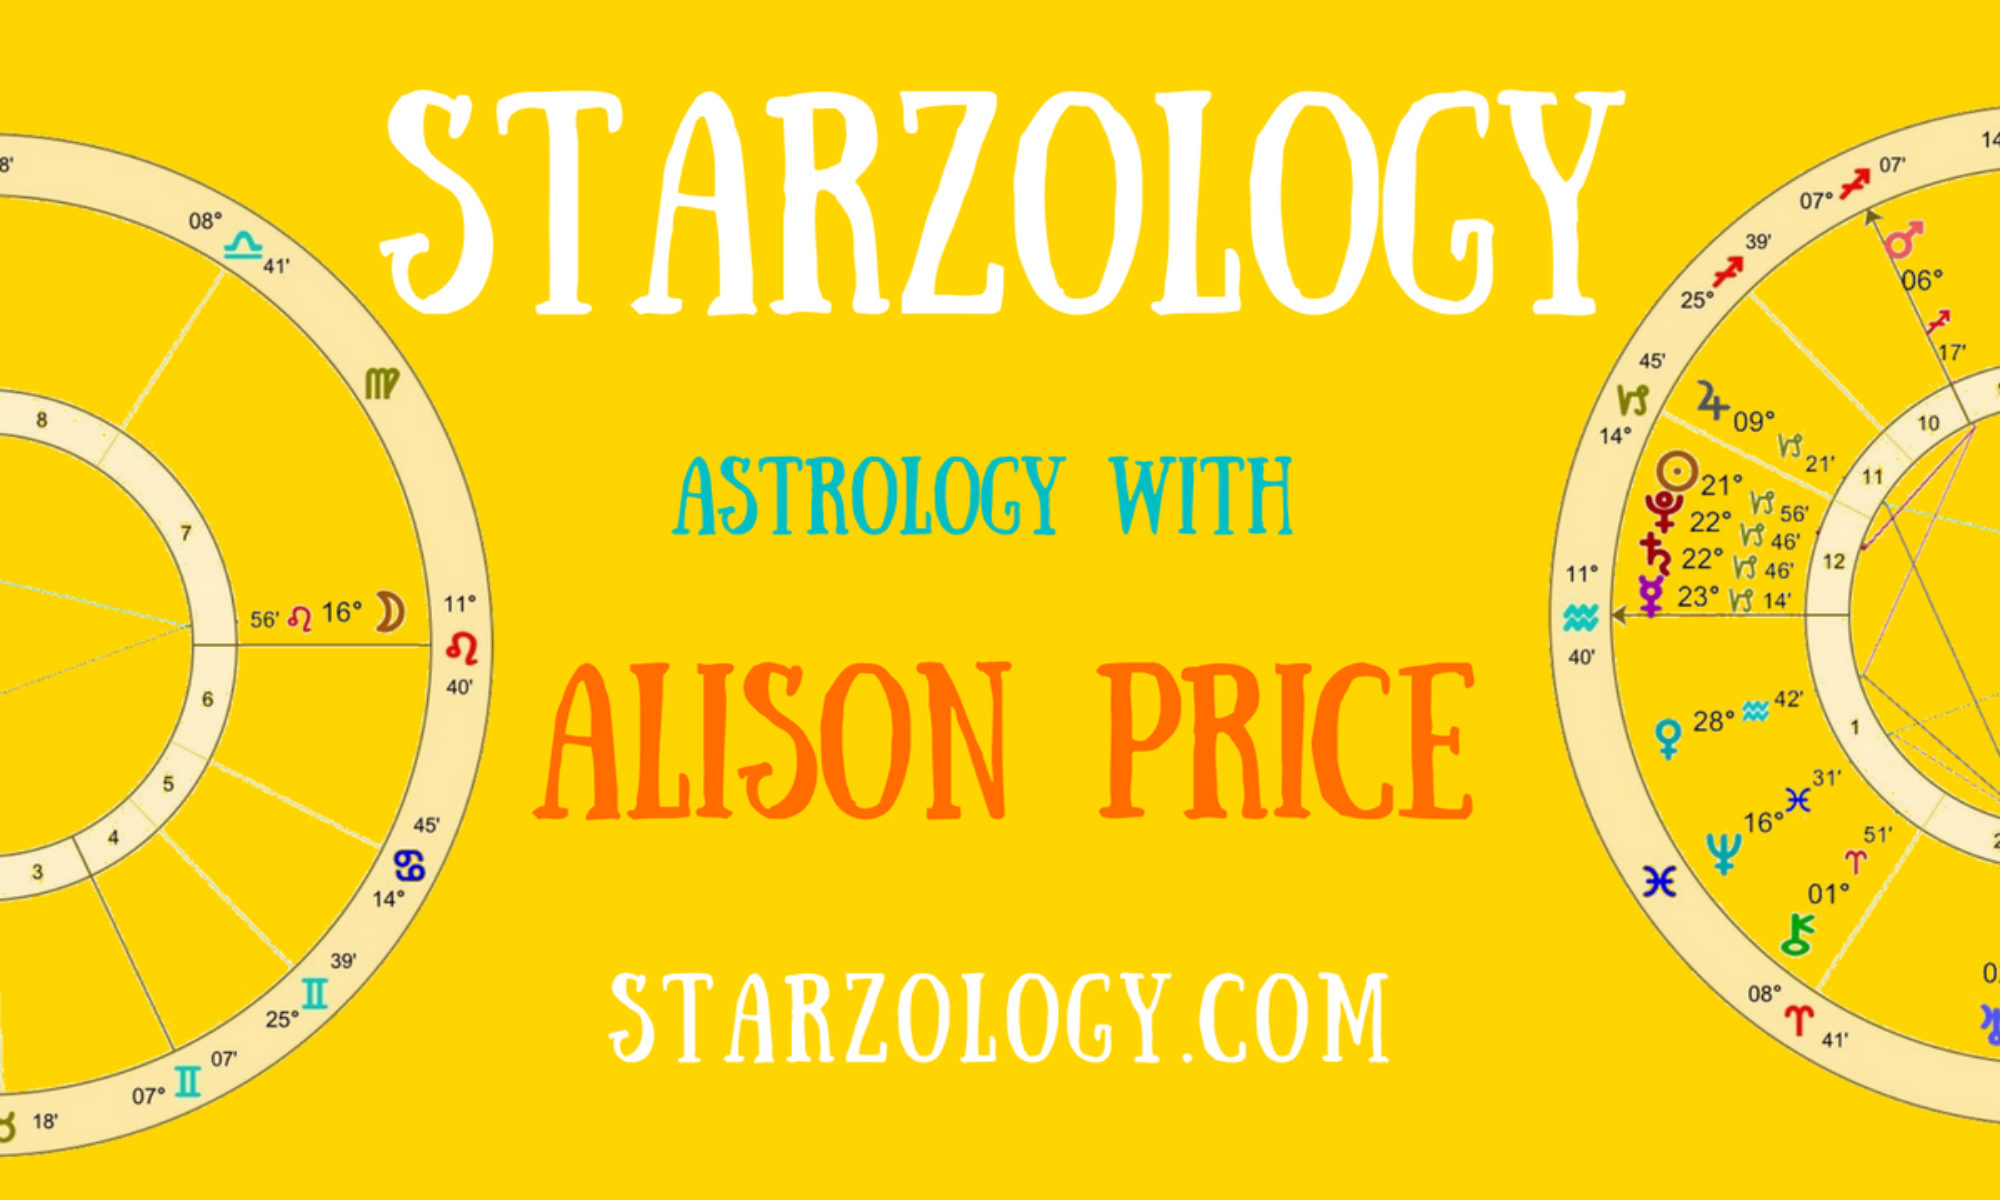 Starzology - Astrology with heart